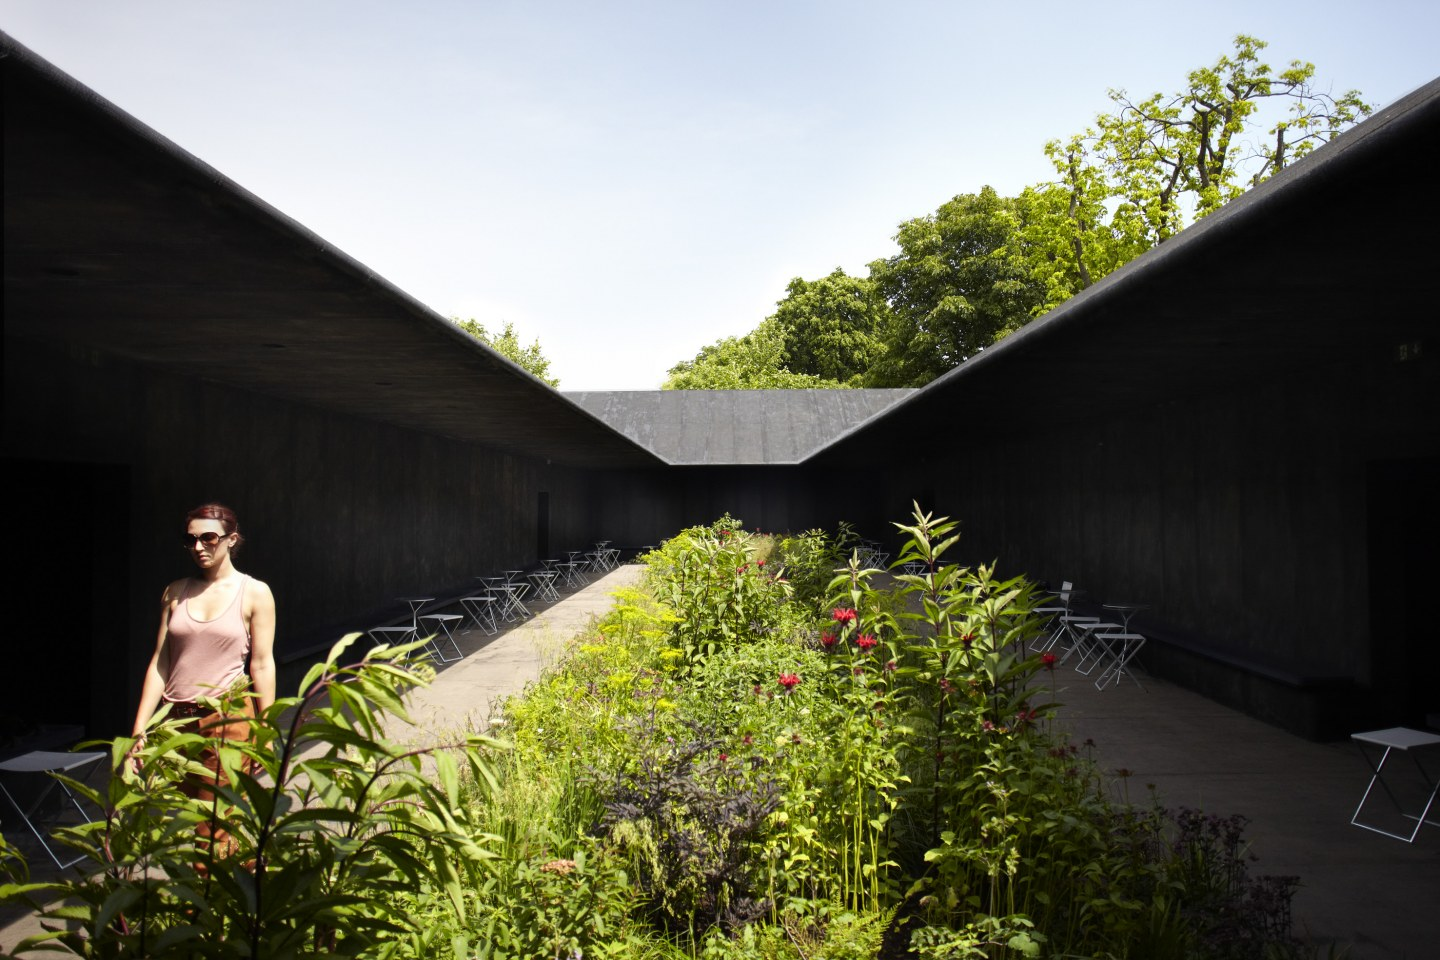 Image 20 of 34 | Serpentine Gallery Pavilion 2011 by Peter Zumthor